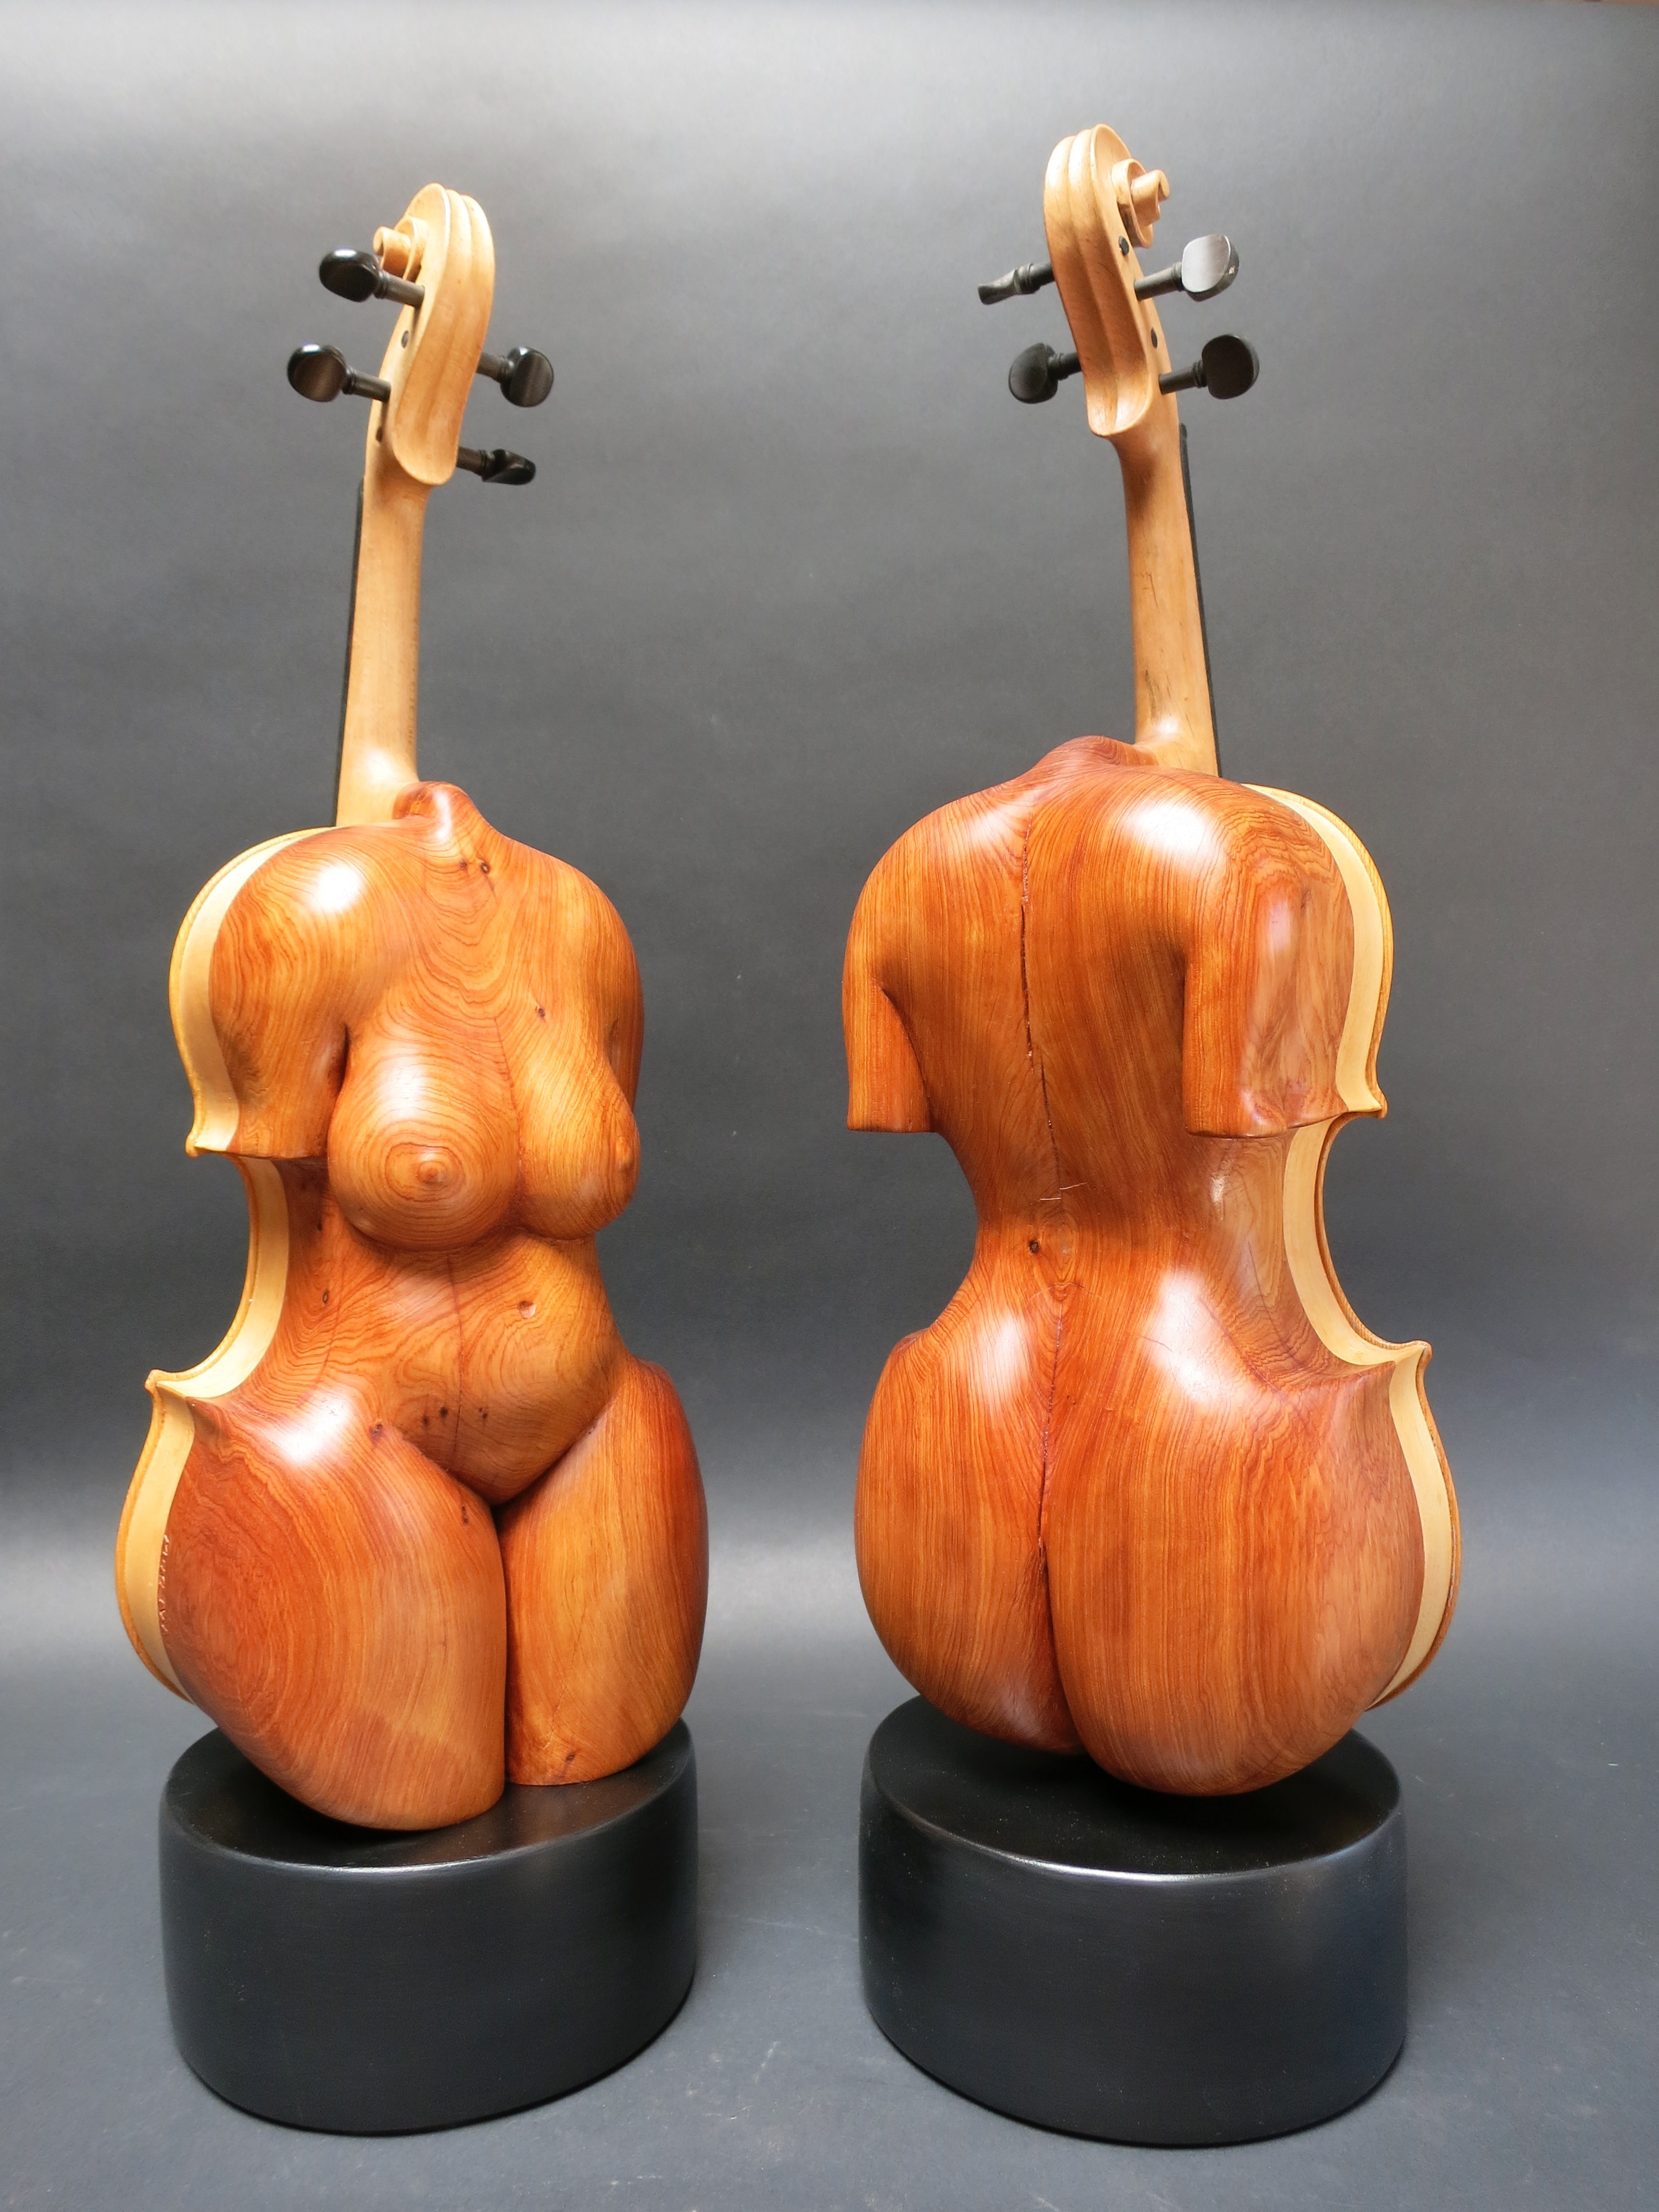 Duet by  Mike Medow - Masterpiece Online